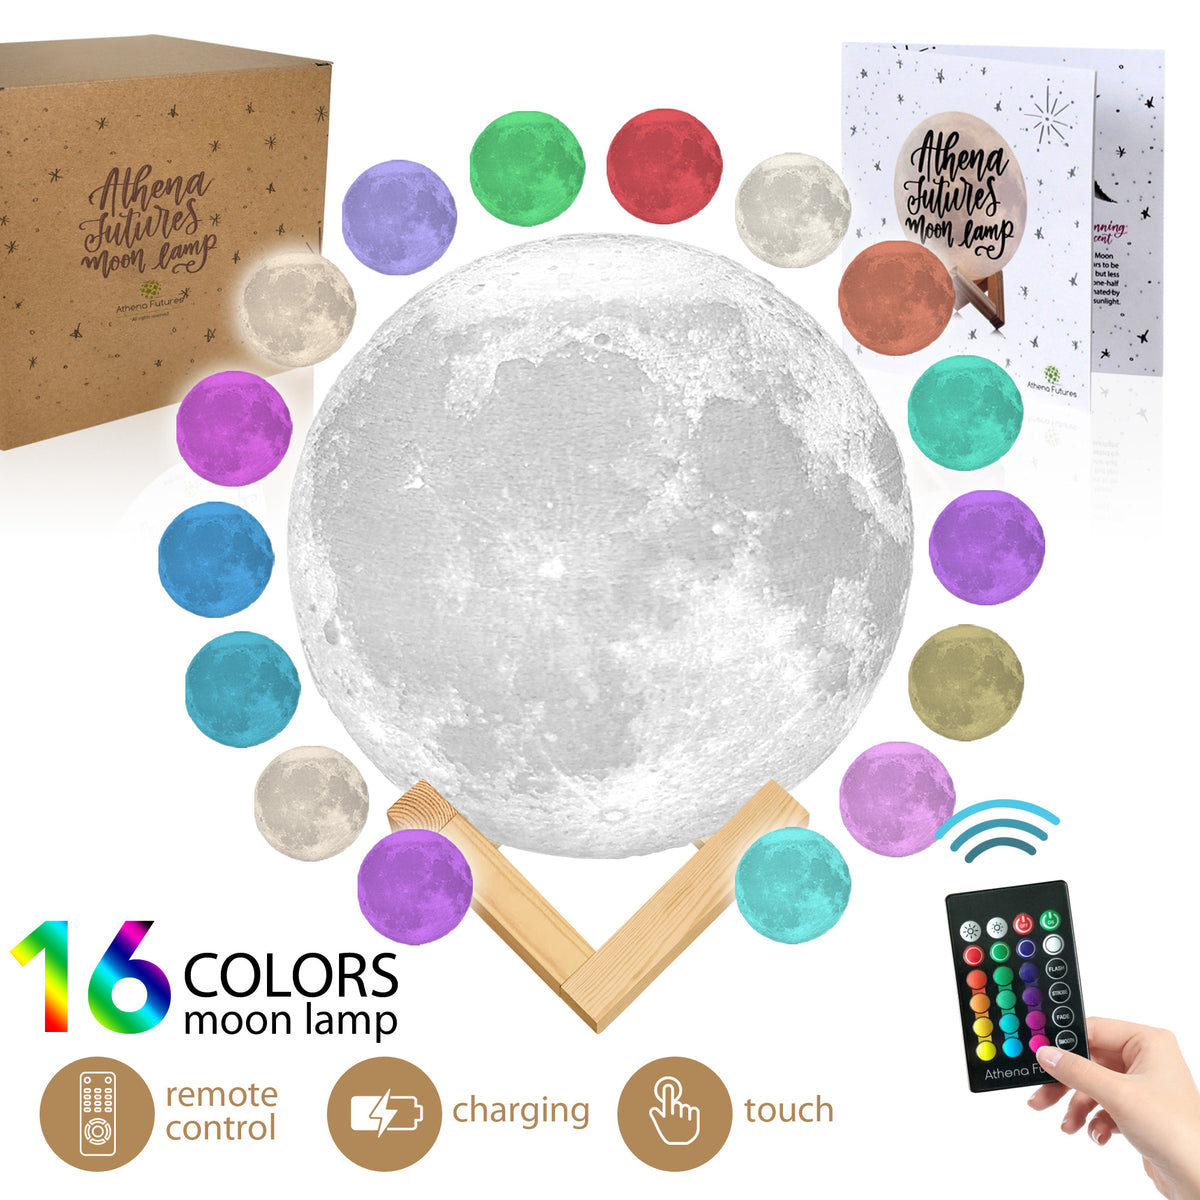 Moon Lamp 3d Printed 5.9 in, 16 Colors - Athena Futures Inc.